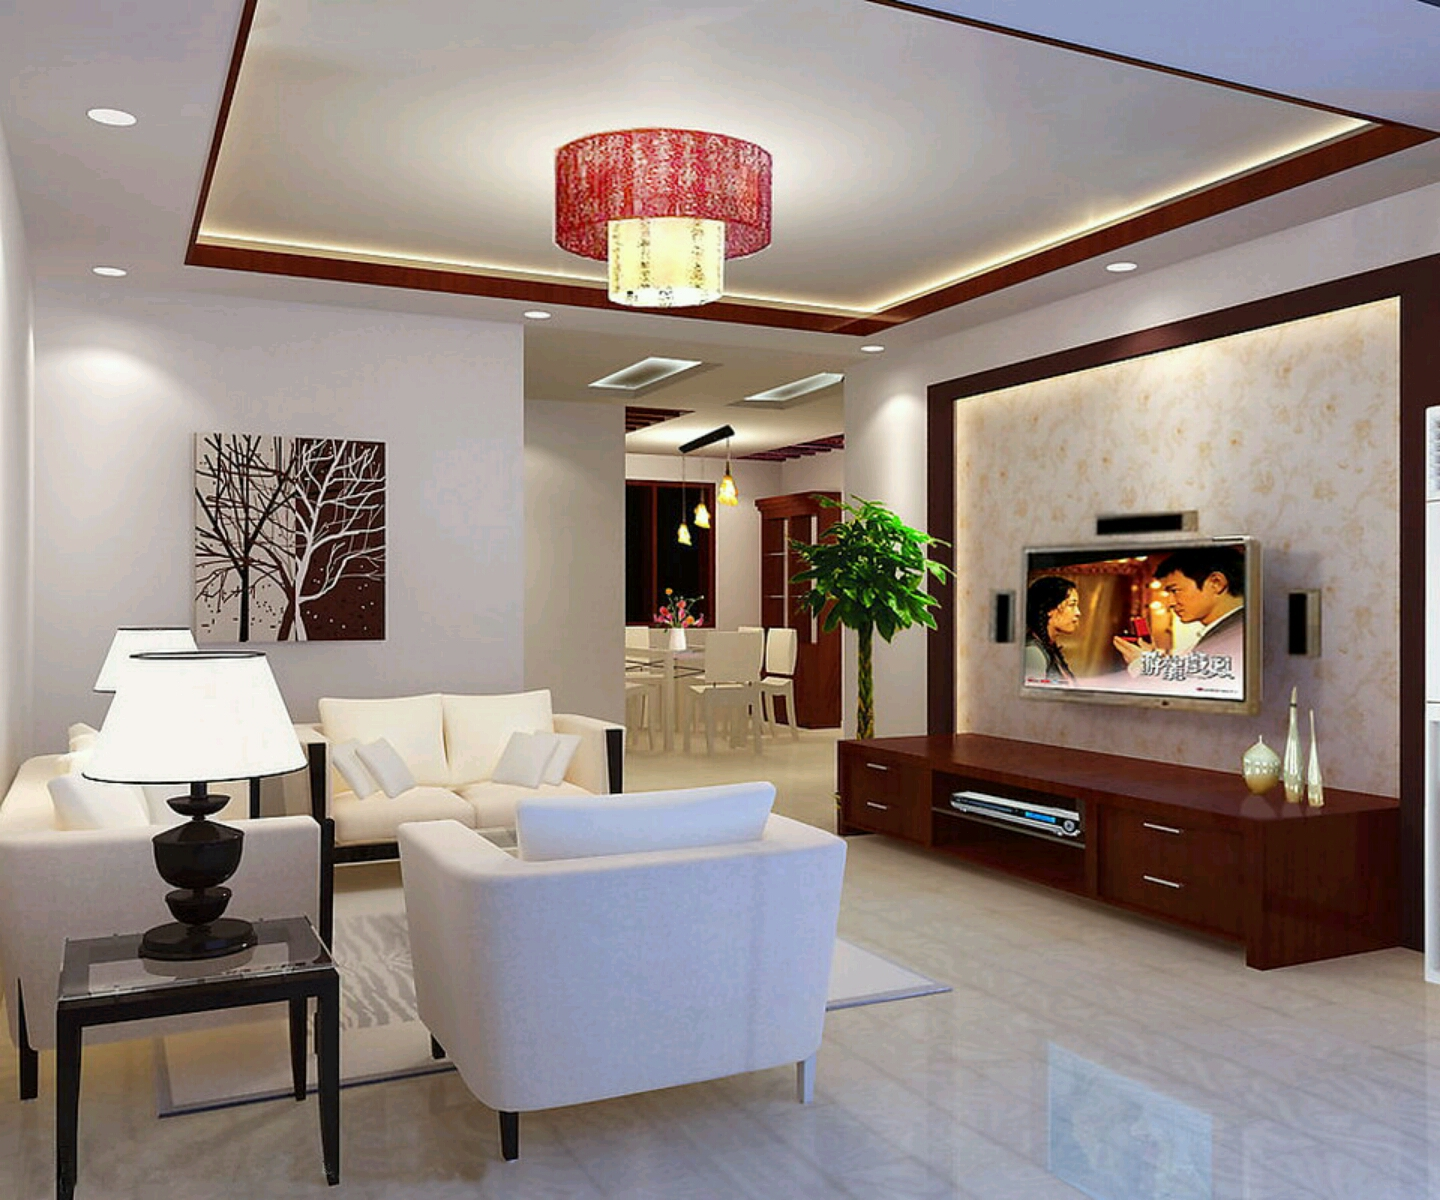 Best interior design house for Latest home interior designs images